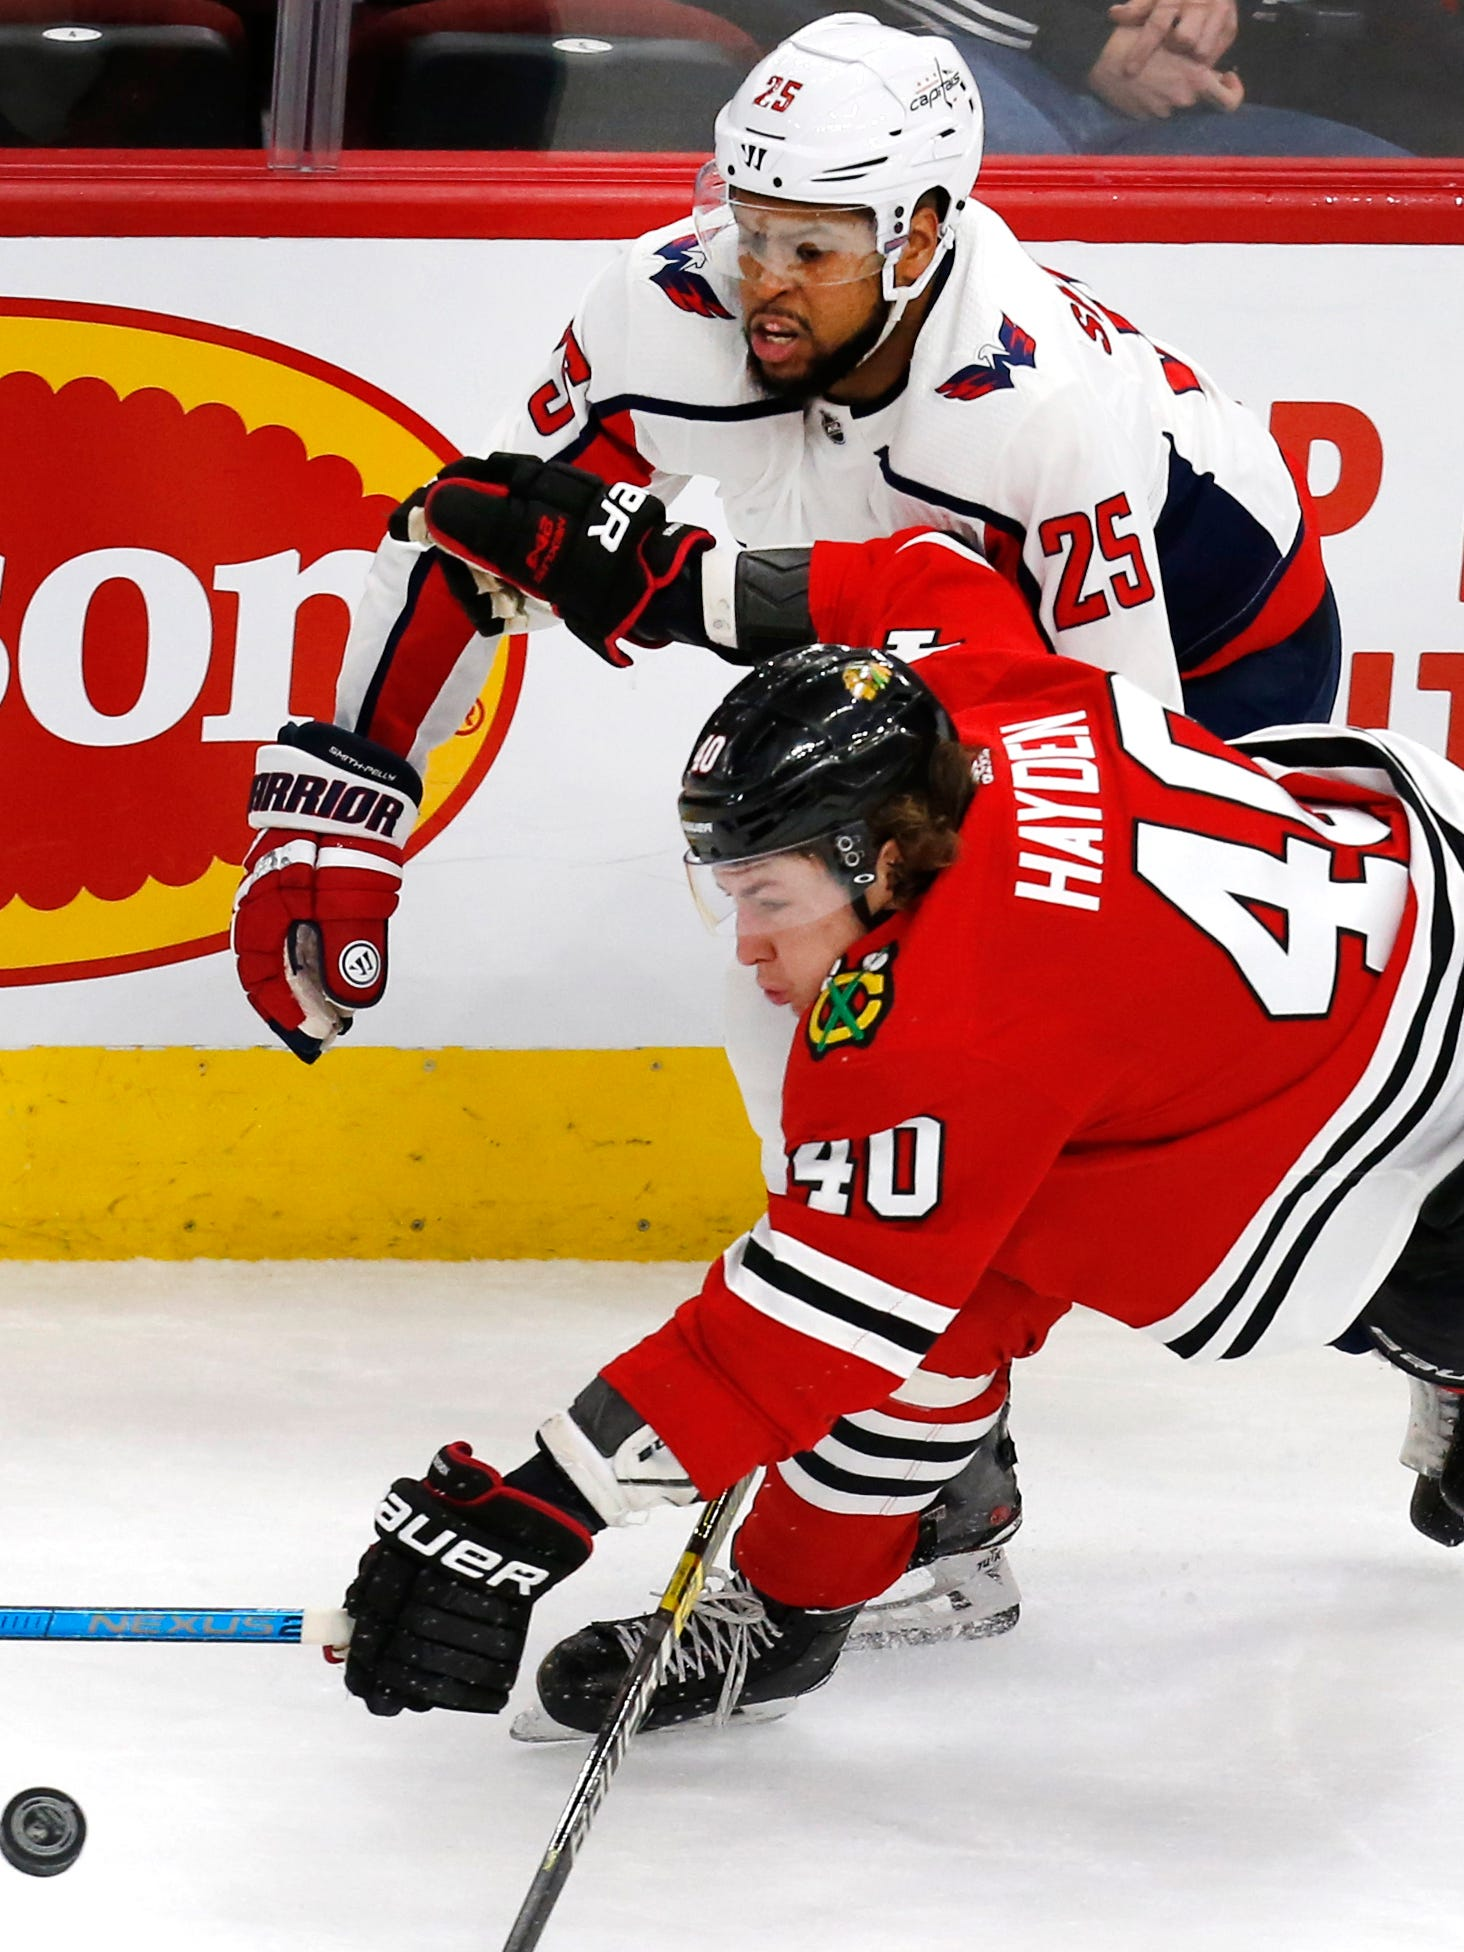 Washington Capitals right wing Devante Smith-Pelly, top, and Chicago Blackhawks right wing John Hayden reach for the puck in Sunday's game in Chicago.